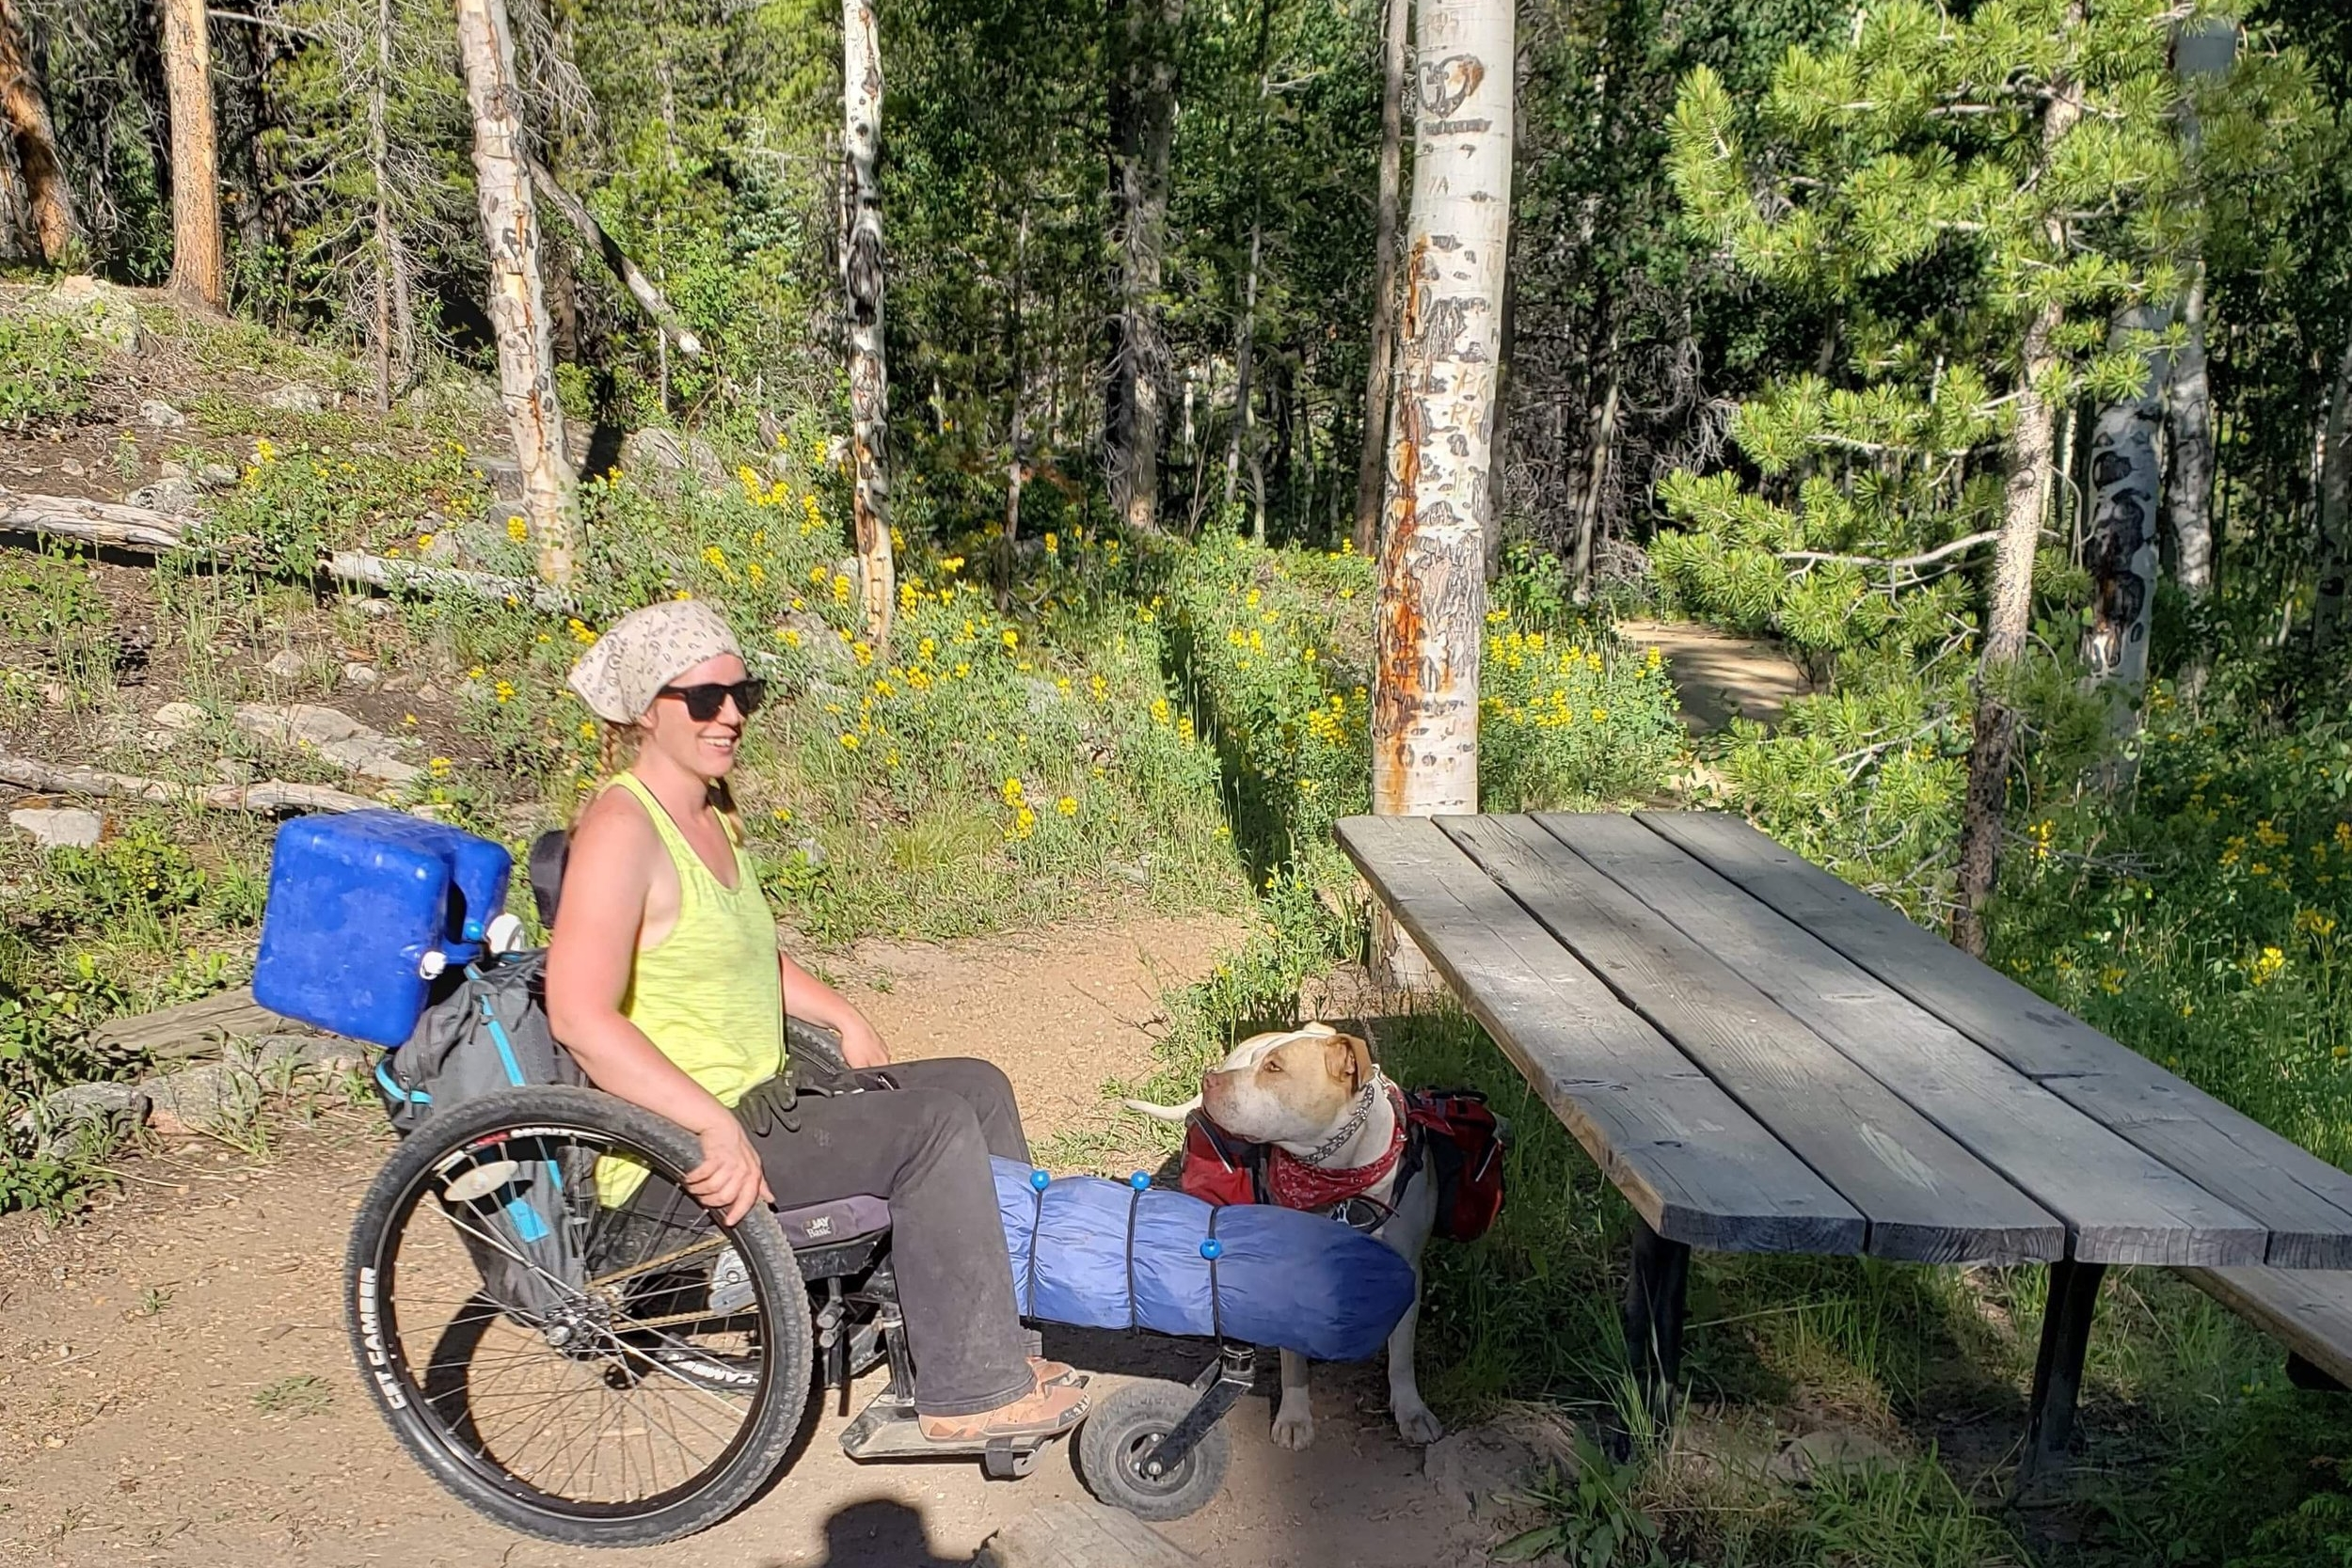 My GRIT Freedom Chair had the balance and stability to get loaded with gear and still be able to tackle inclines, tree roots, and all kinds of things.